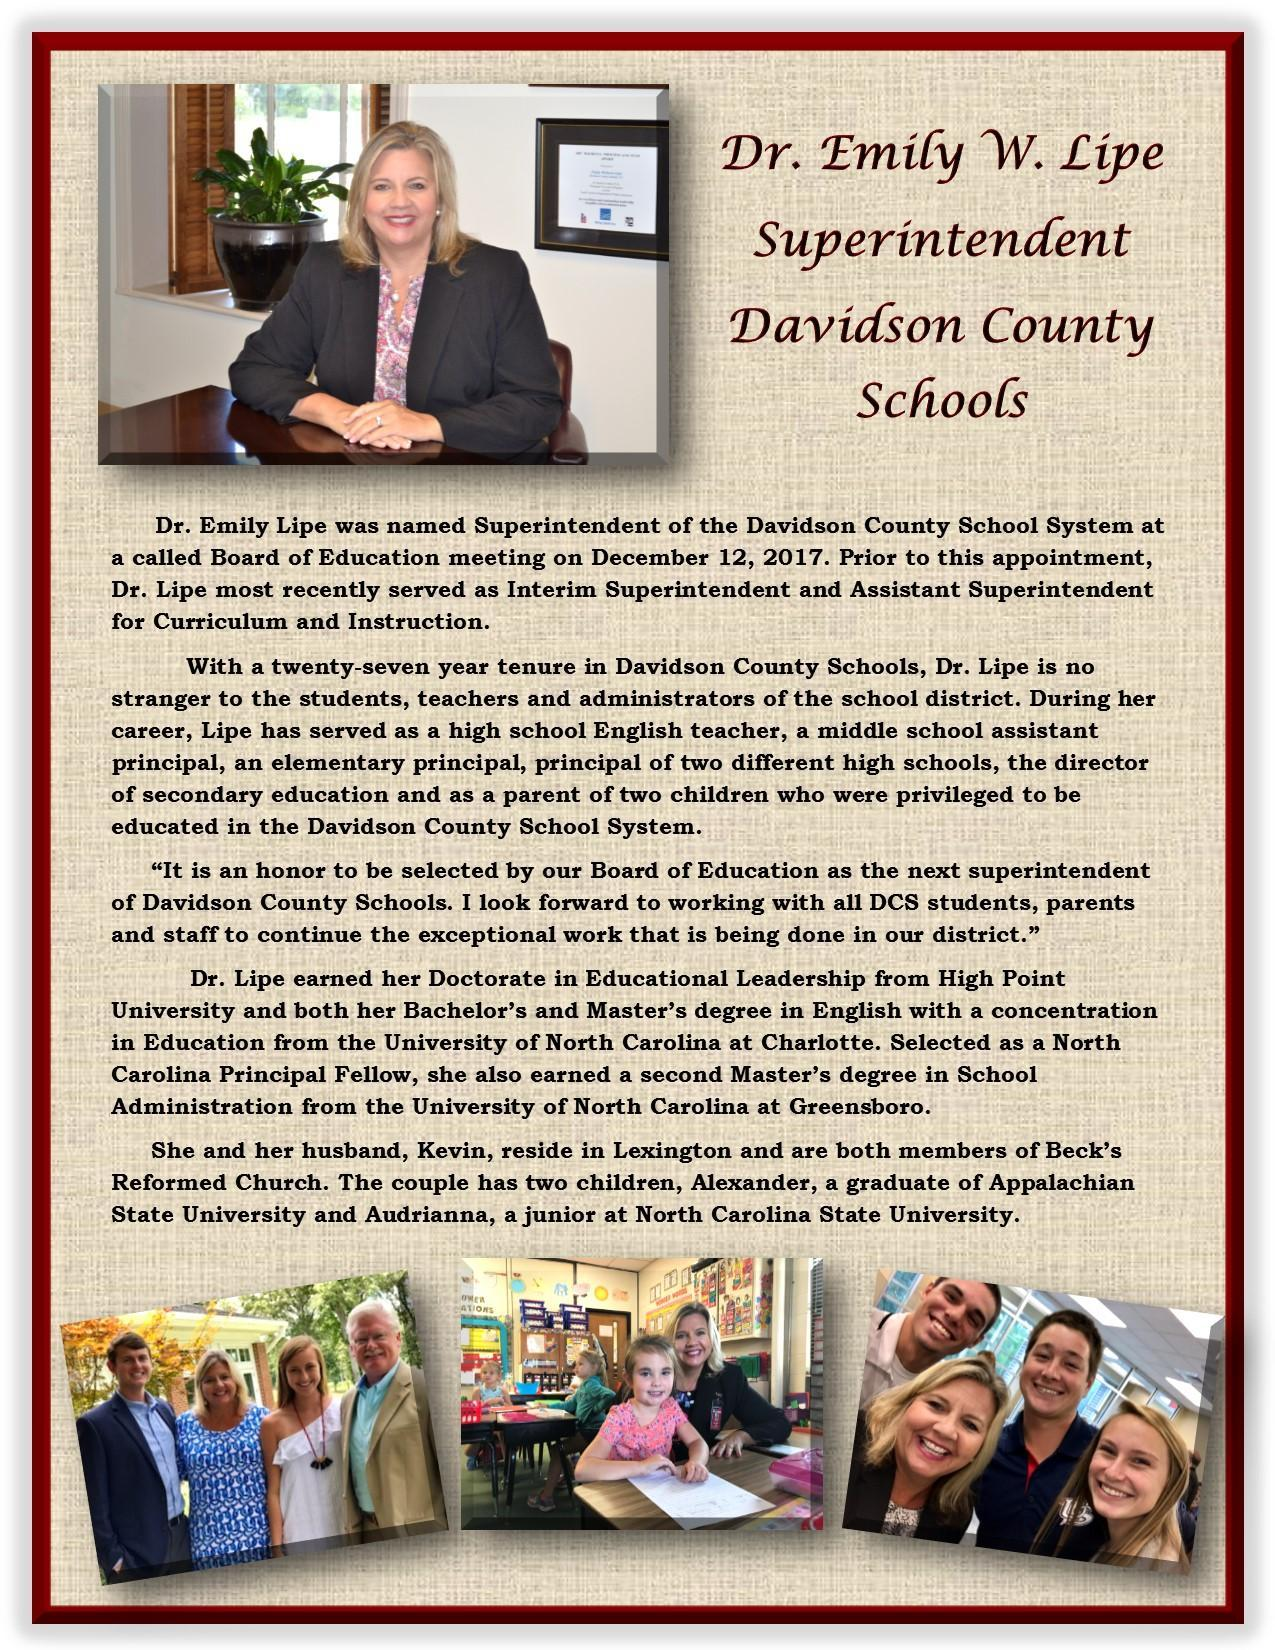 Superintendent's Biography